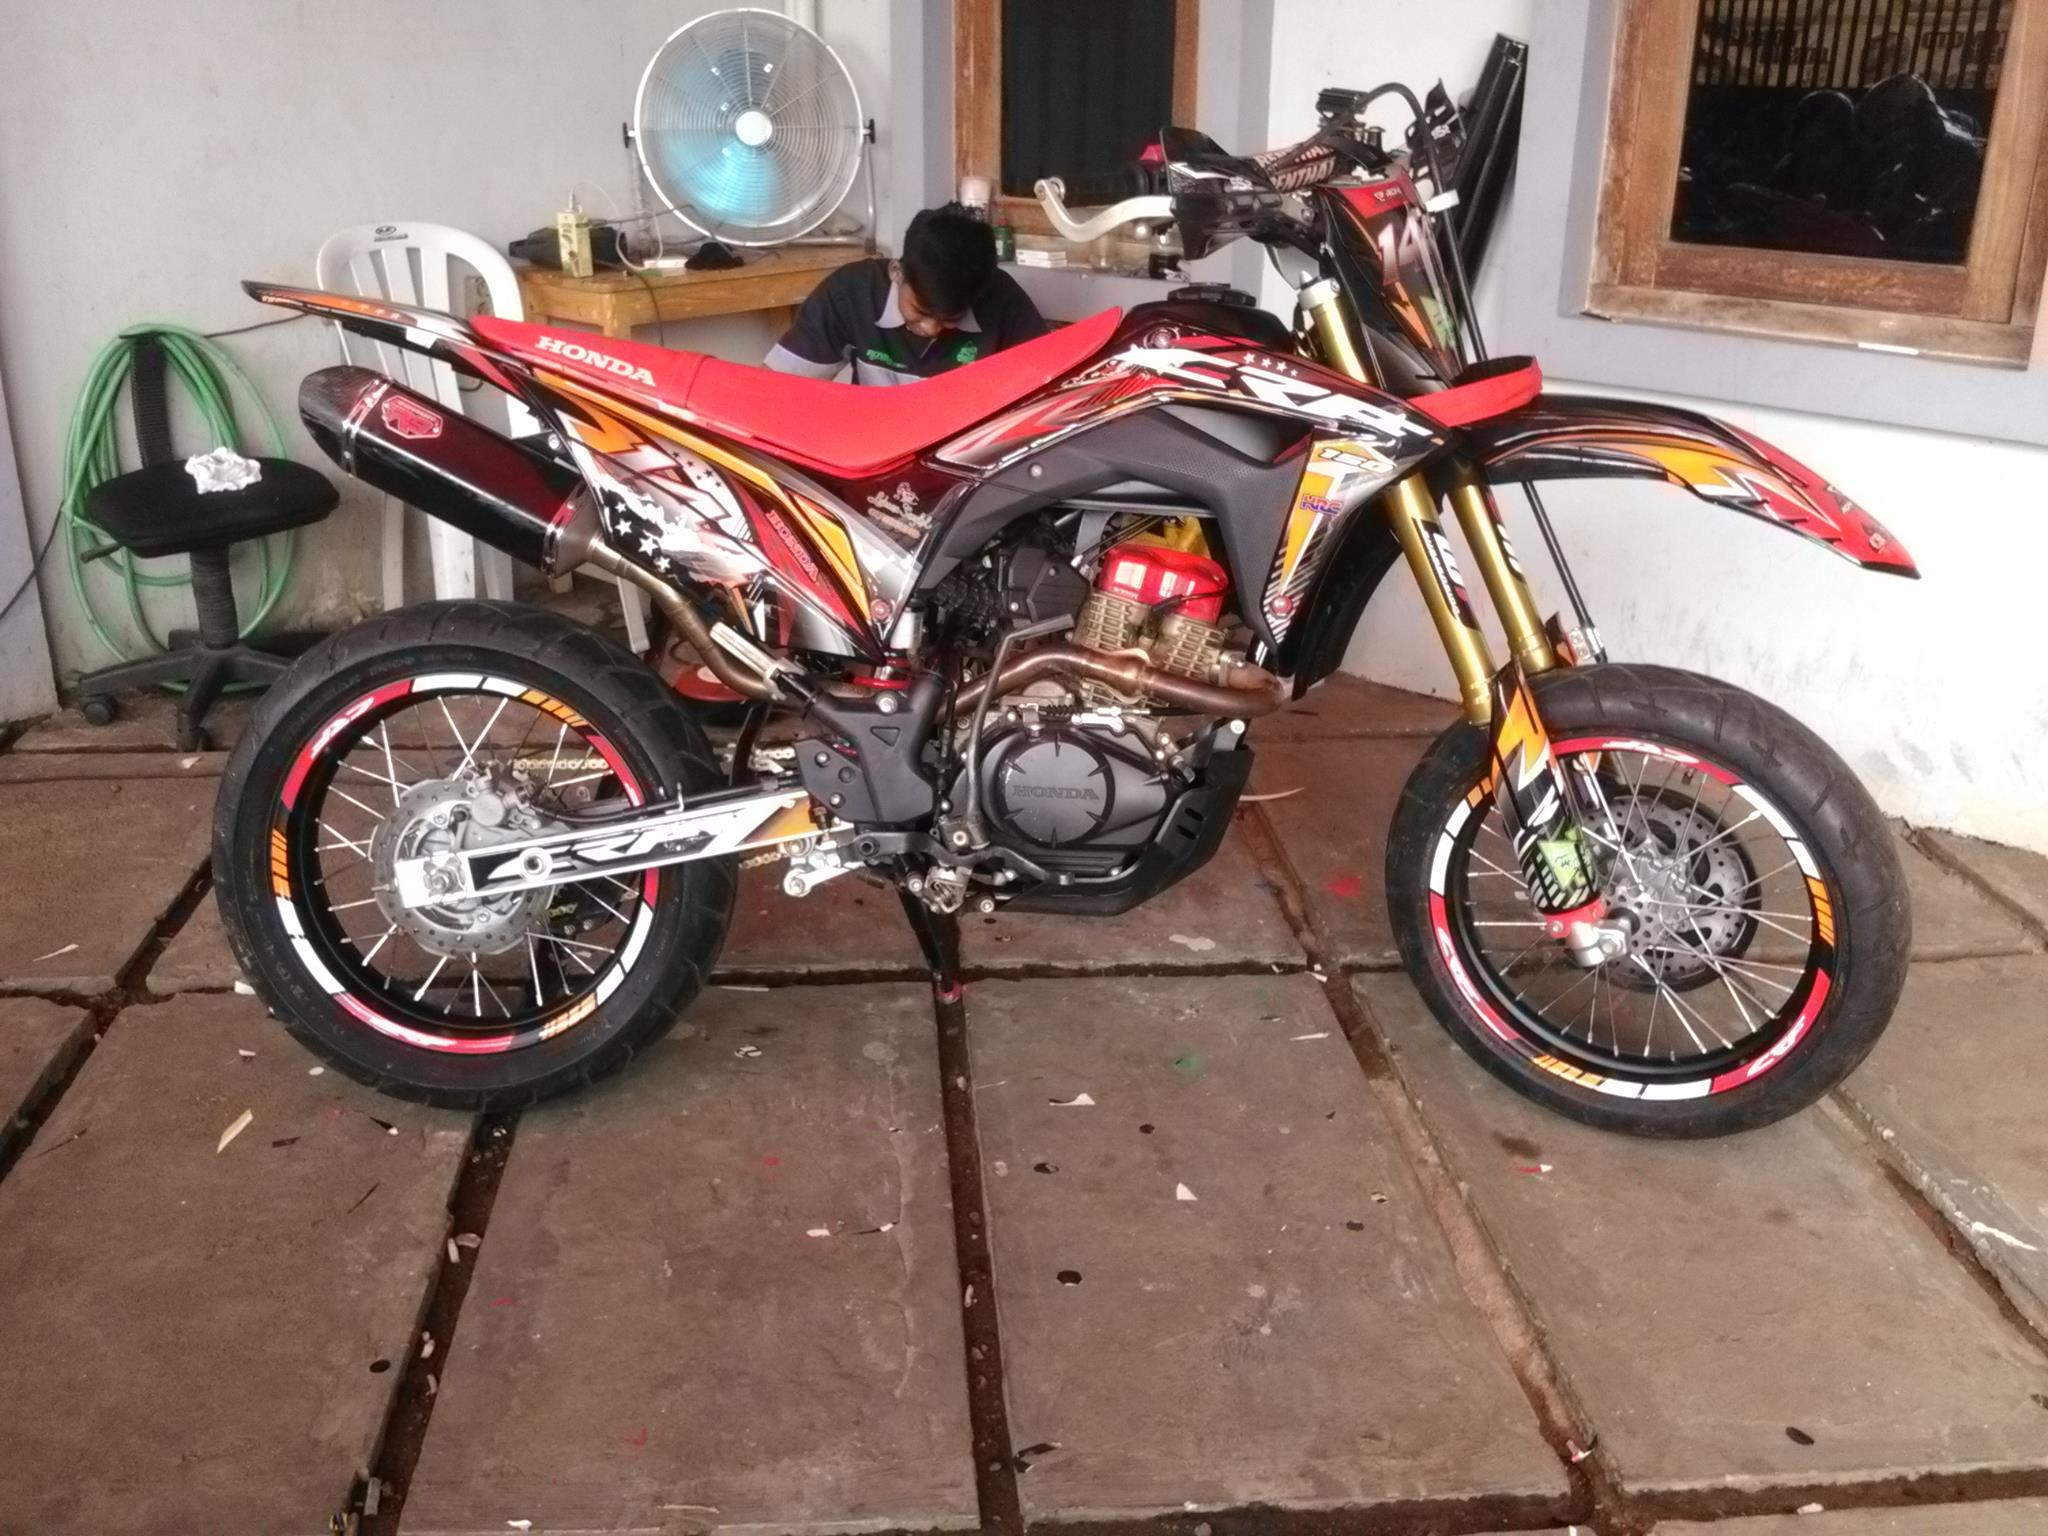 Decal crf 150 timbul decal motor fullbody dtracker decal klx